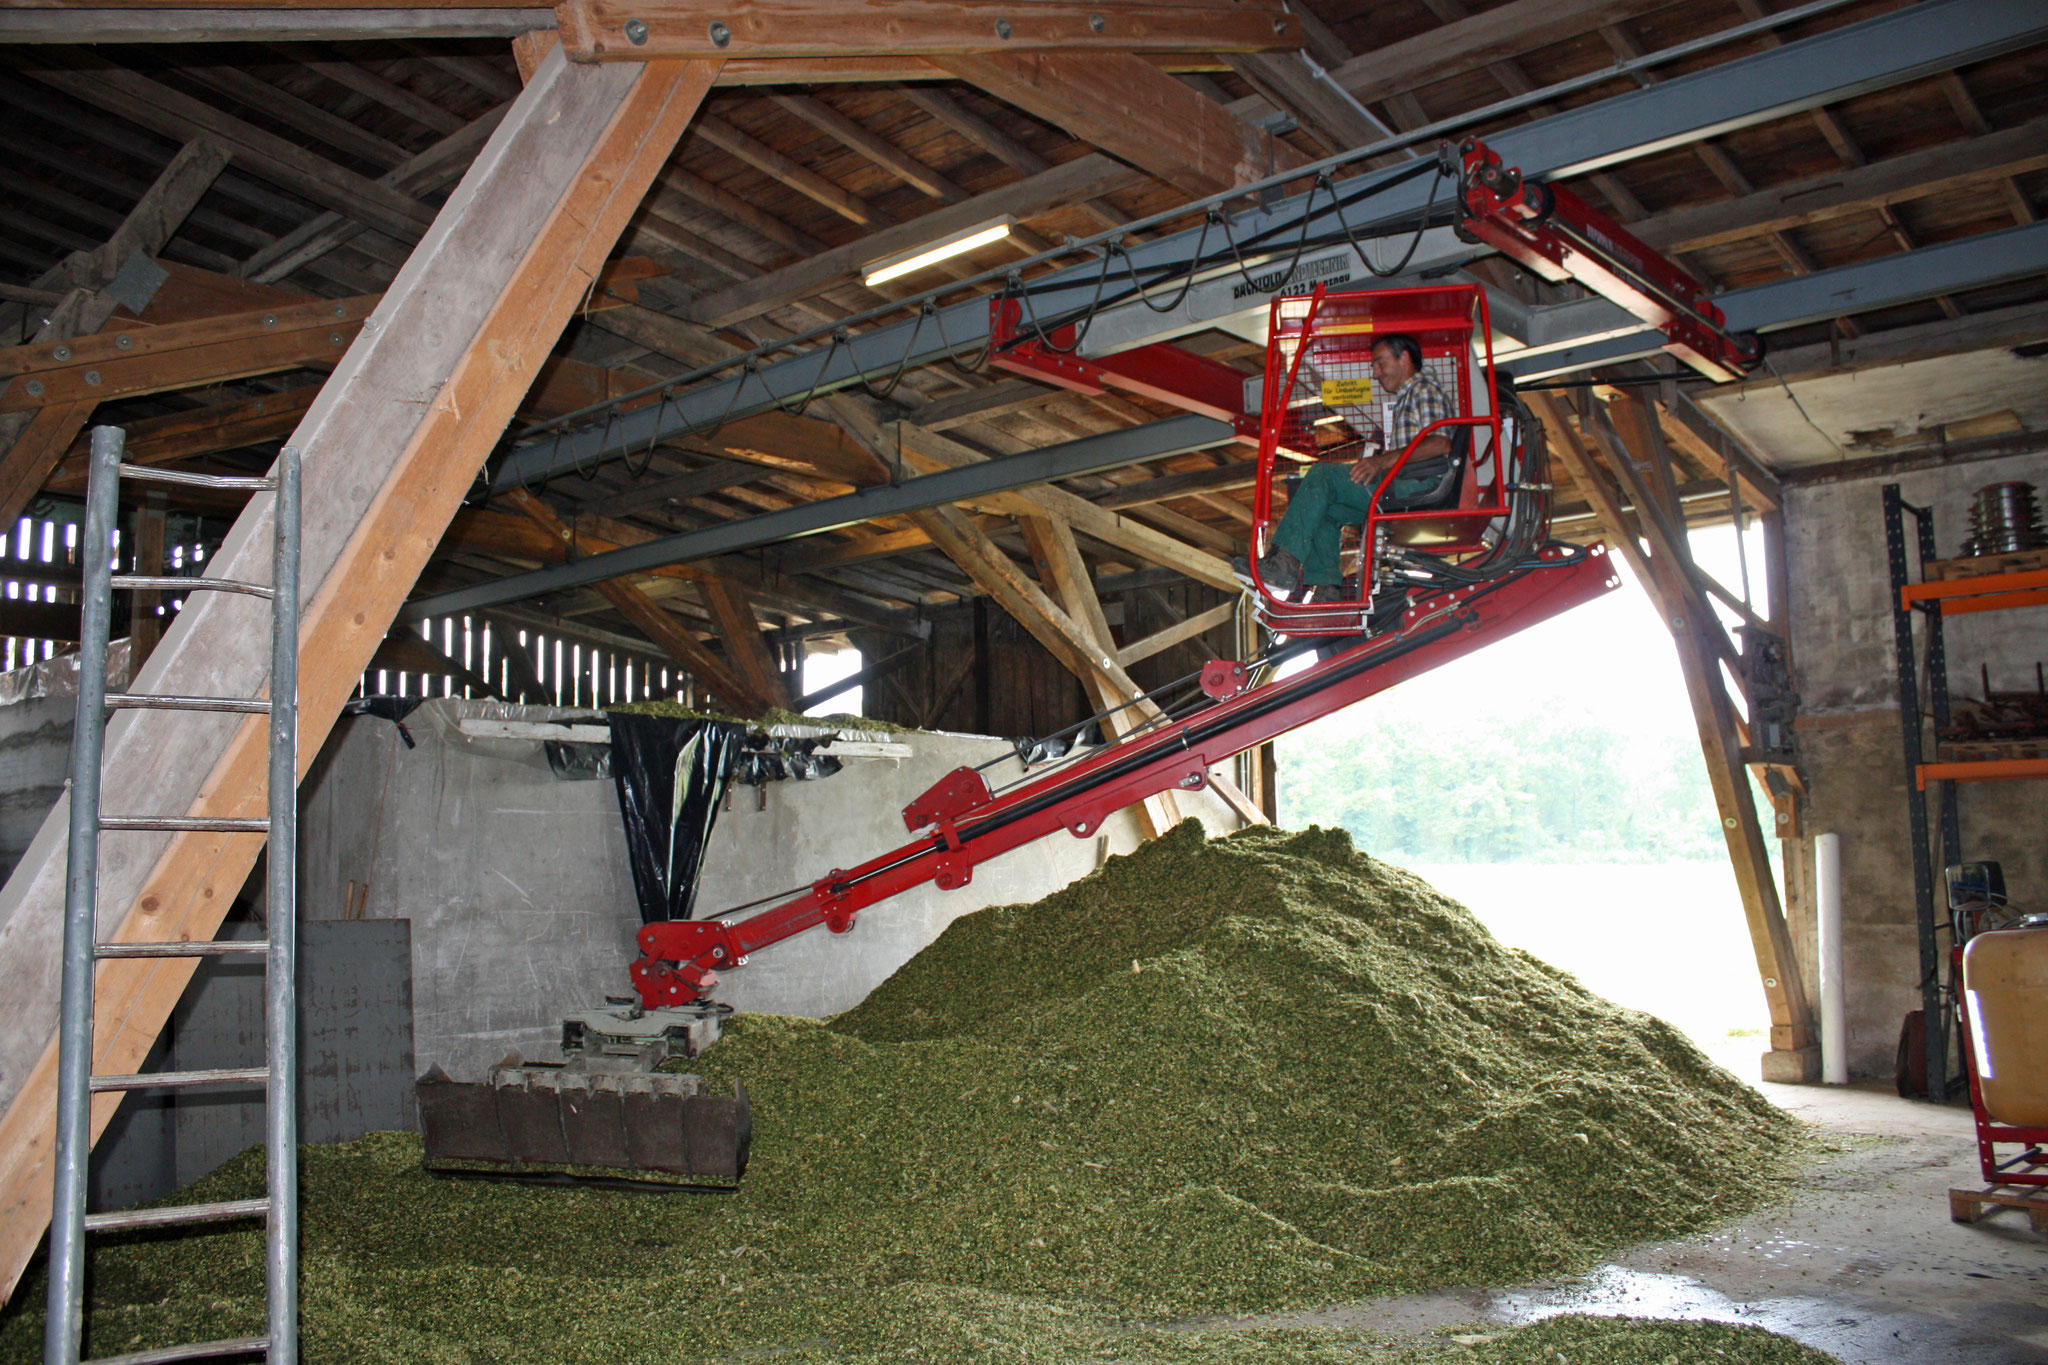 in the barn: maize is filled in the silos